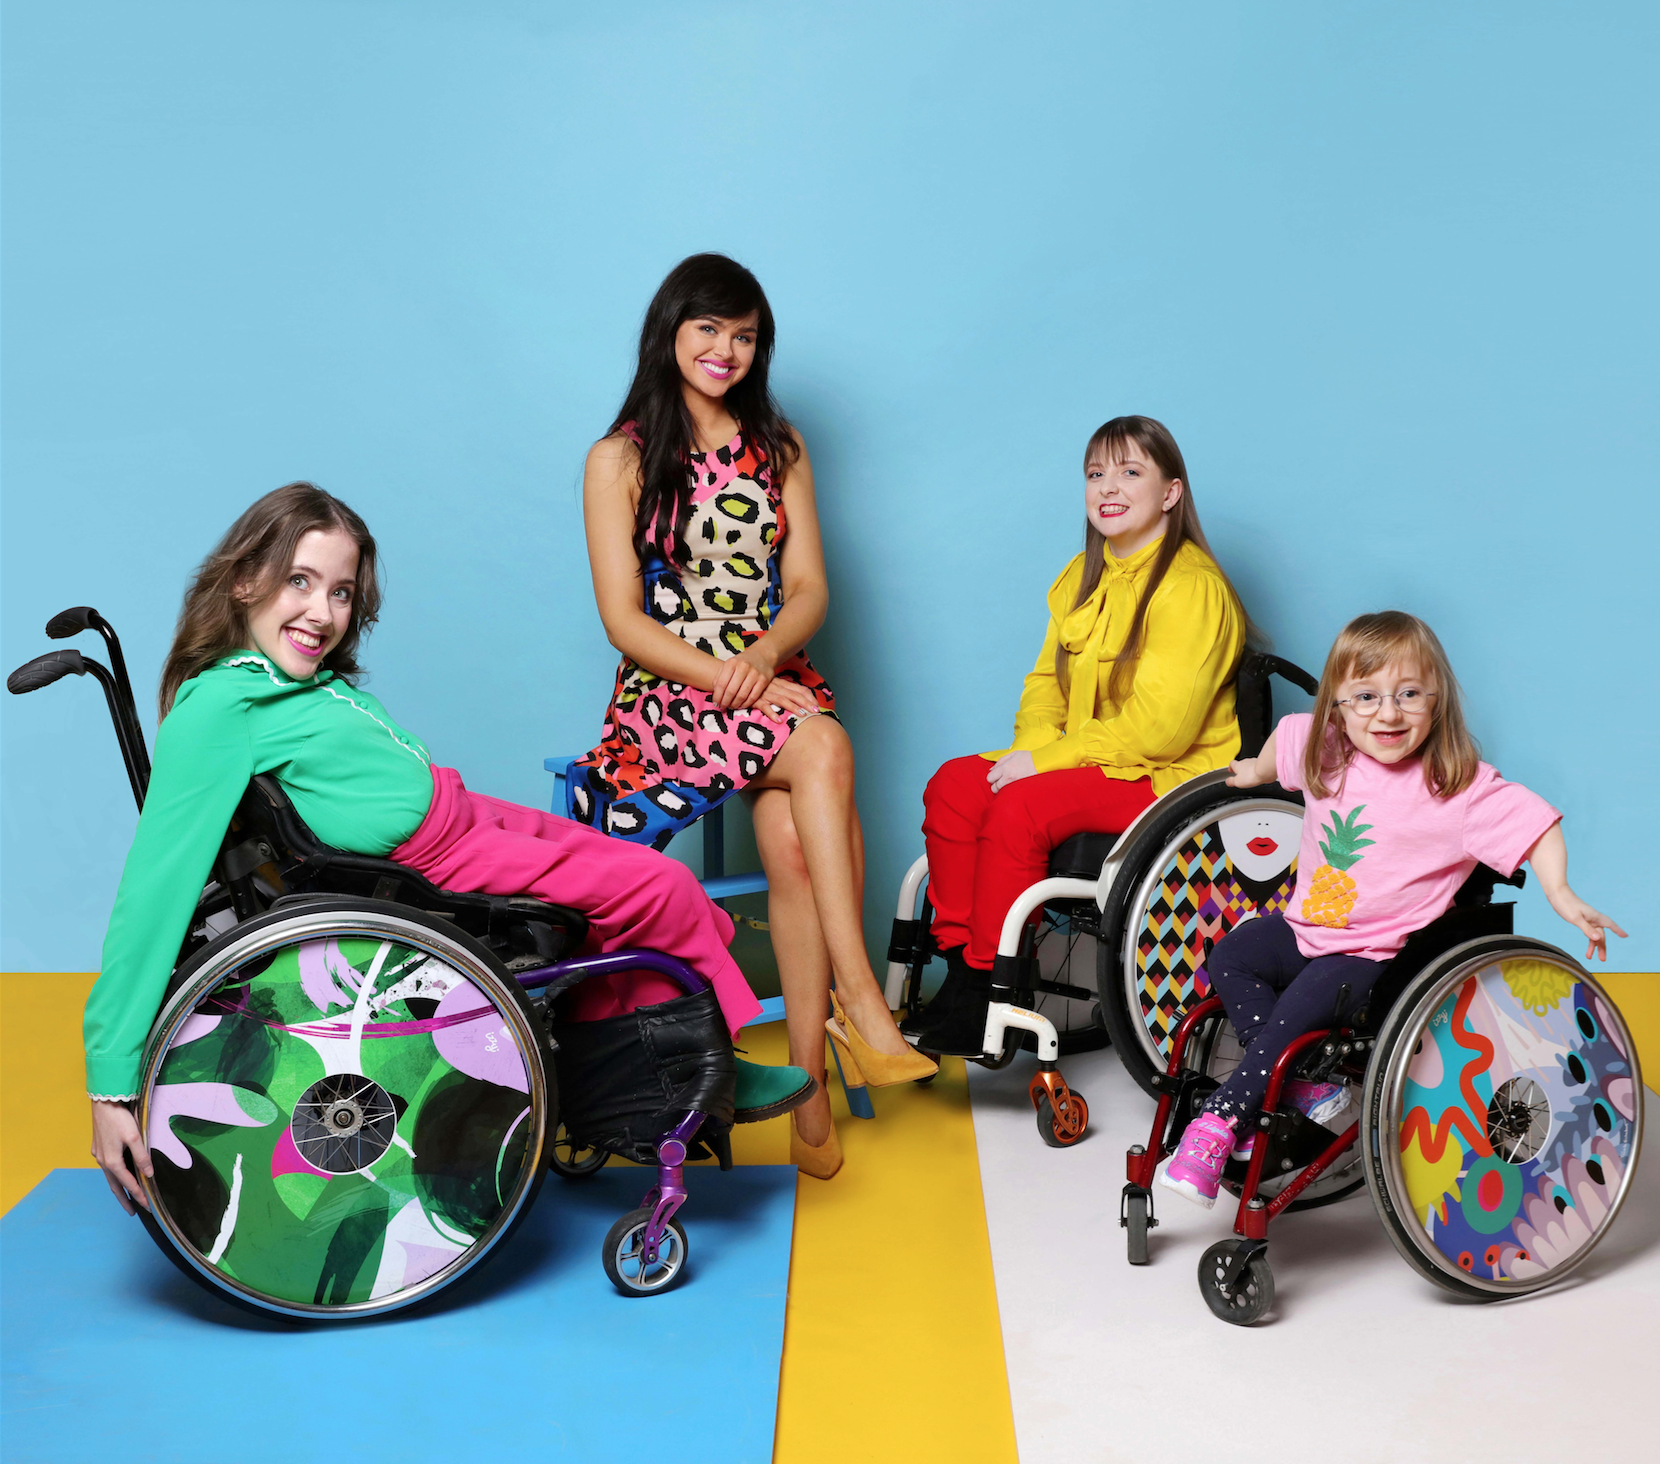 'They're regular people who are fashionable people': Ailbhe Keane of Izzy Wheels